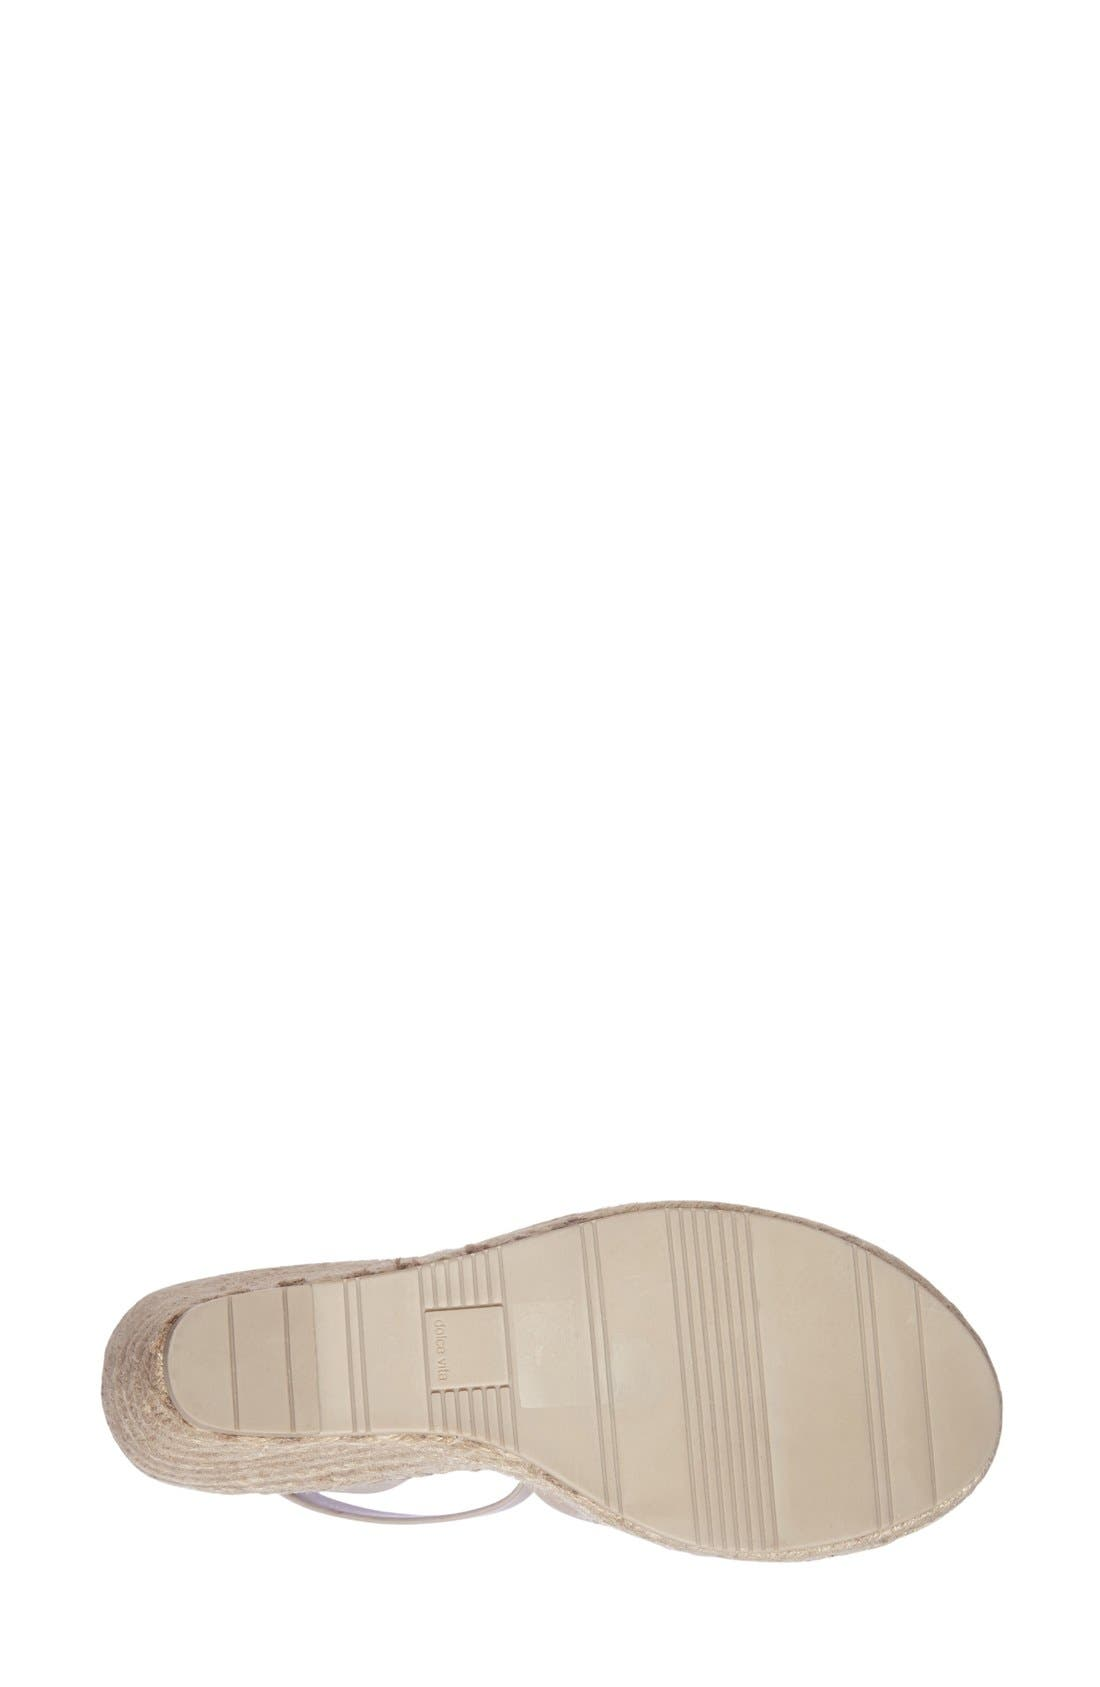 Alternate Image 4  - Dolce Vita 'Nova' Espadrille Wedge Sandal (Women)